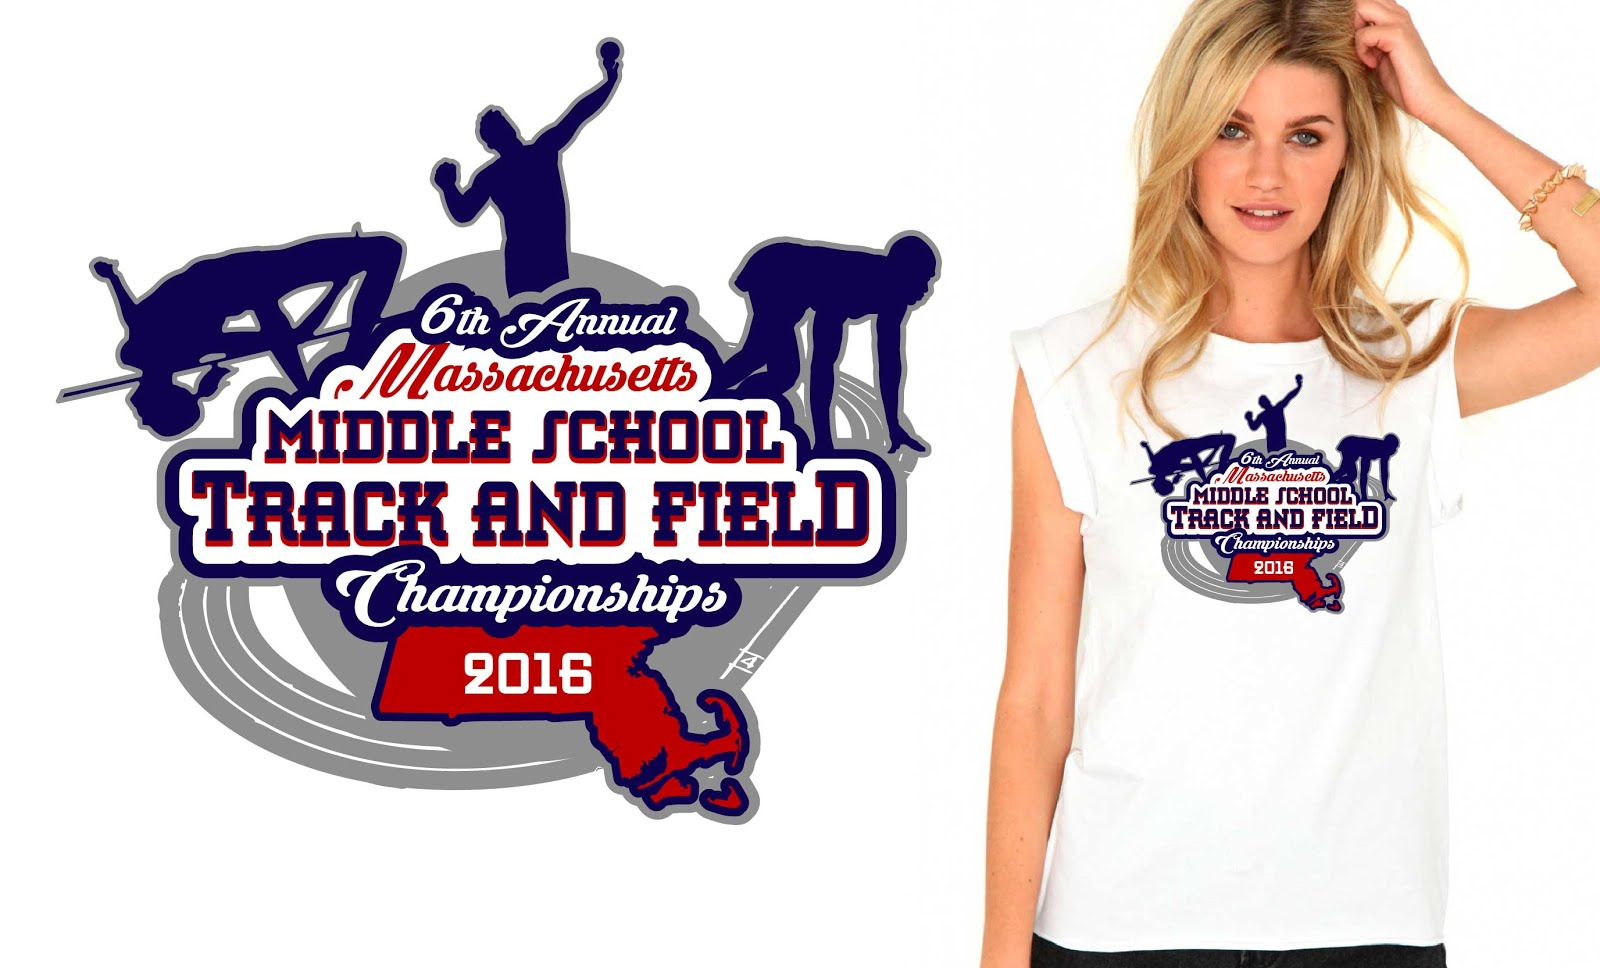 Stunning vector logo design for tshirt for Track and Field event